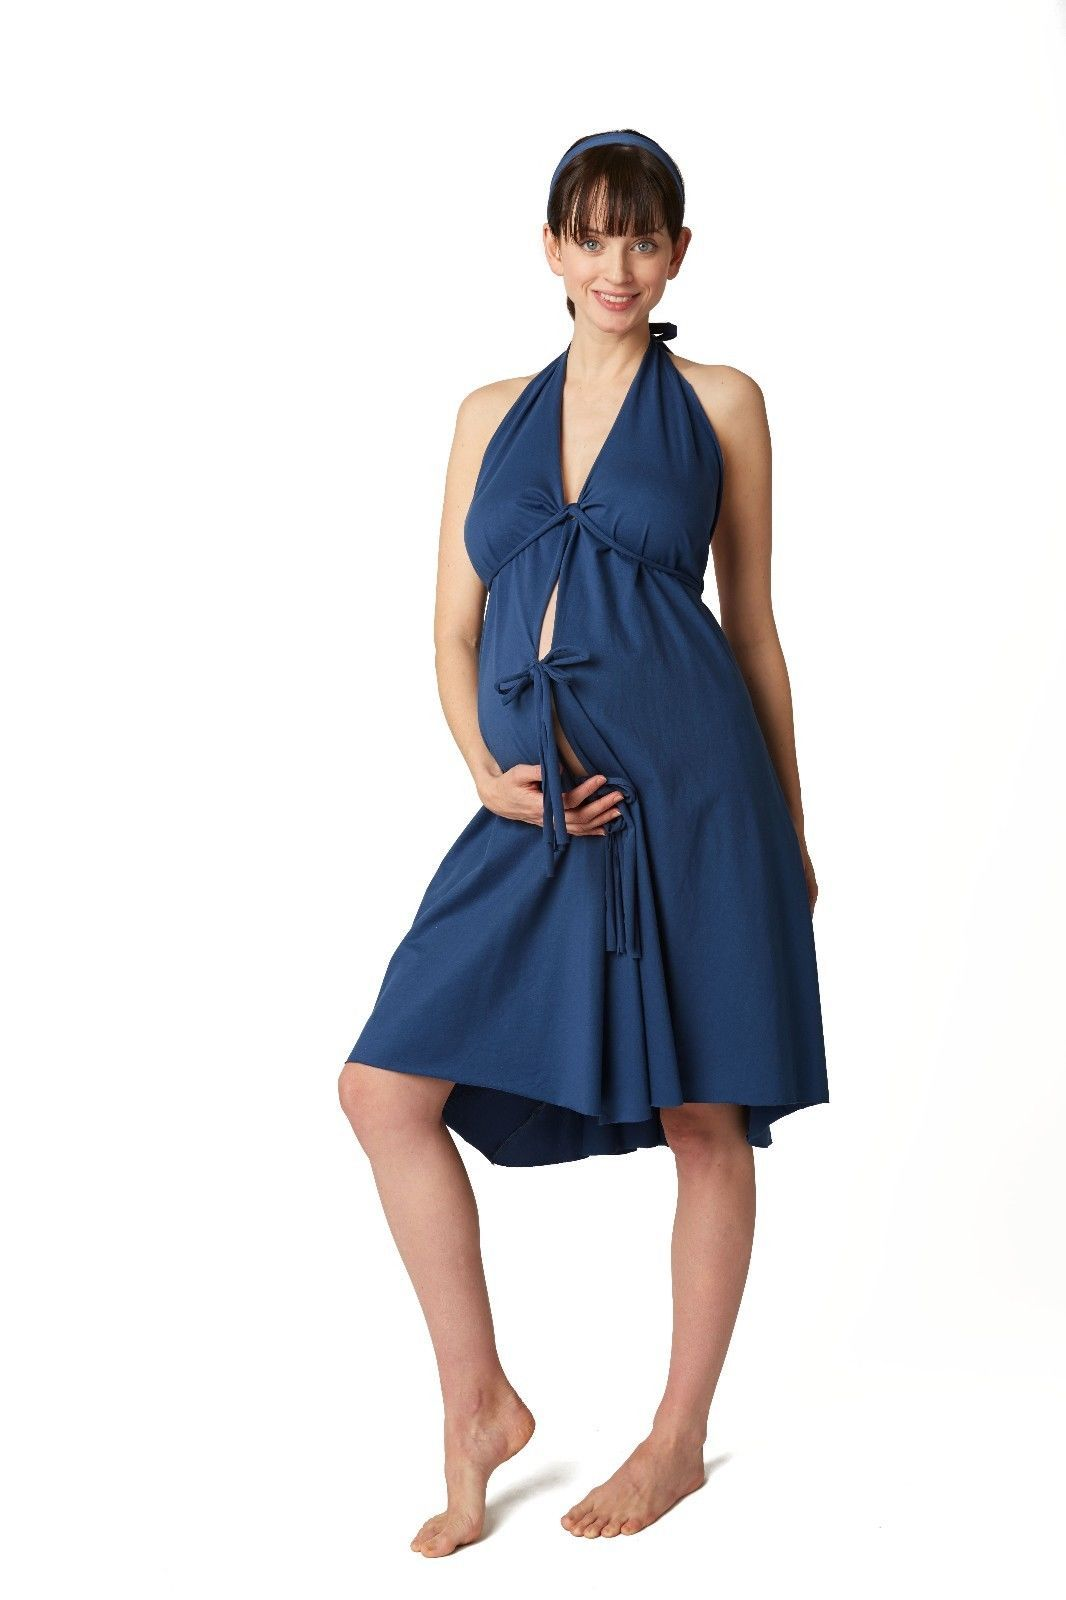 Other Maternity Clothing 1264: Pretty Pushers Maternity Birthing ...